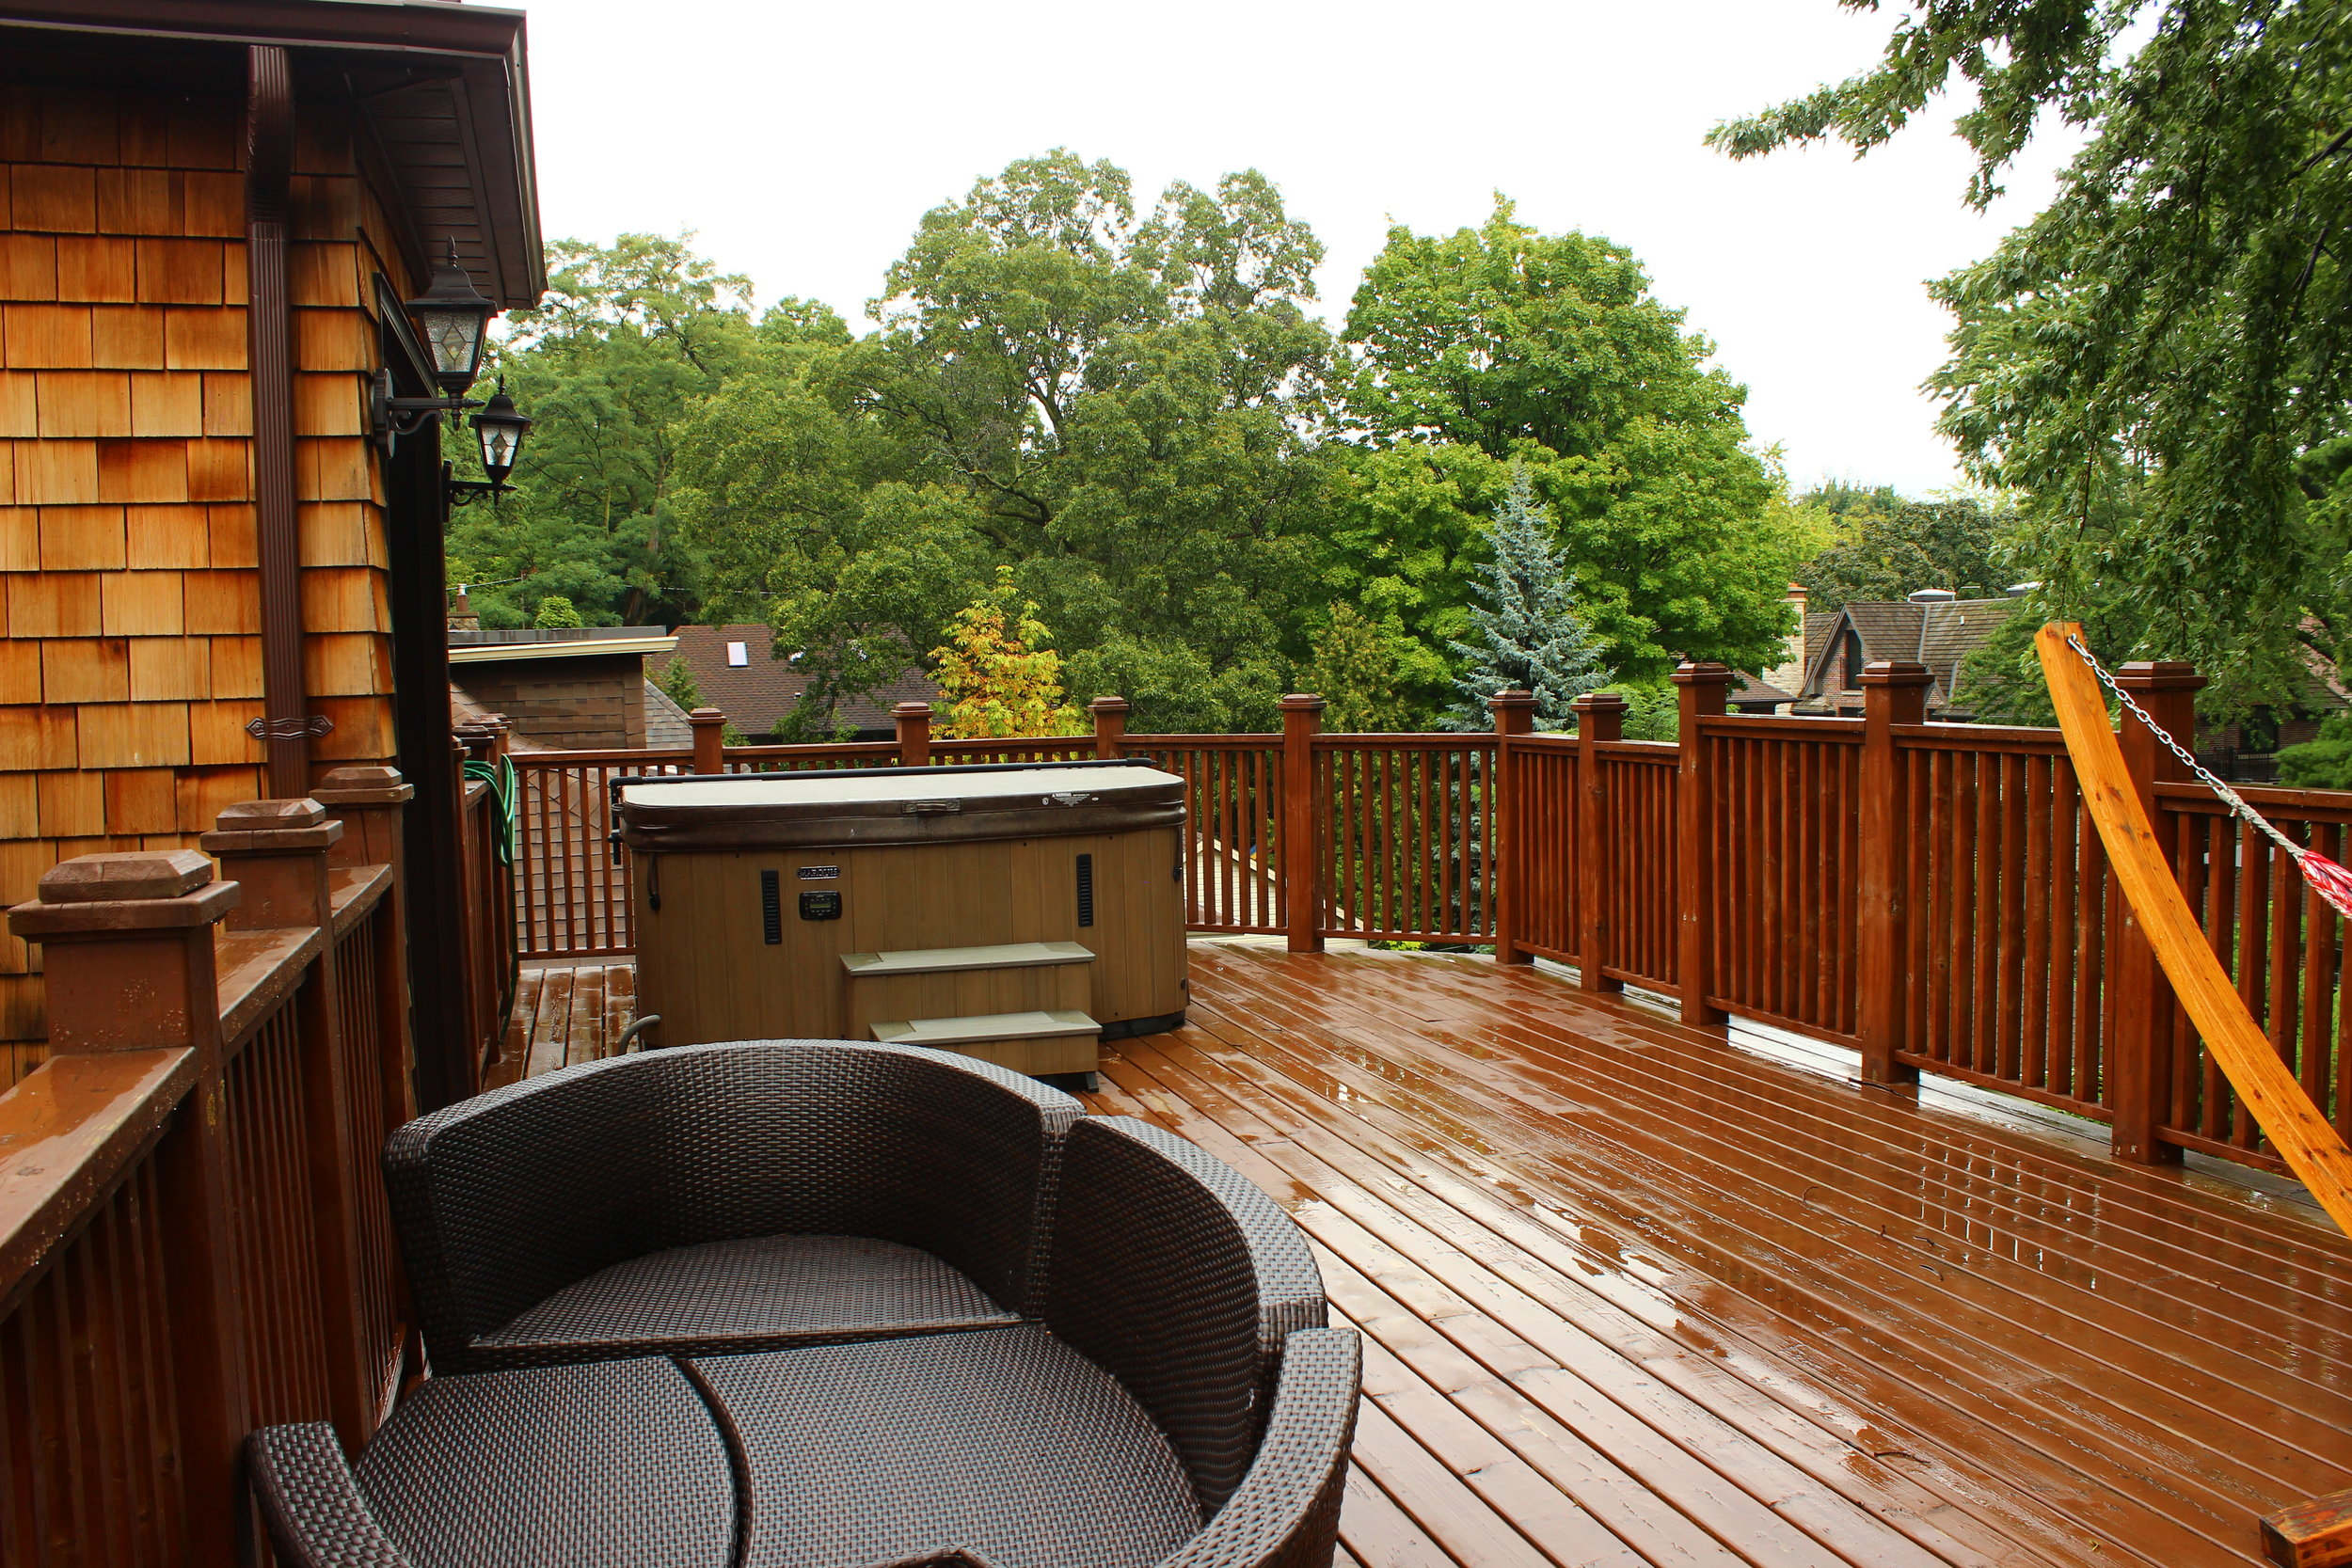 Backyard ideas for the ultimate outdoor space. -